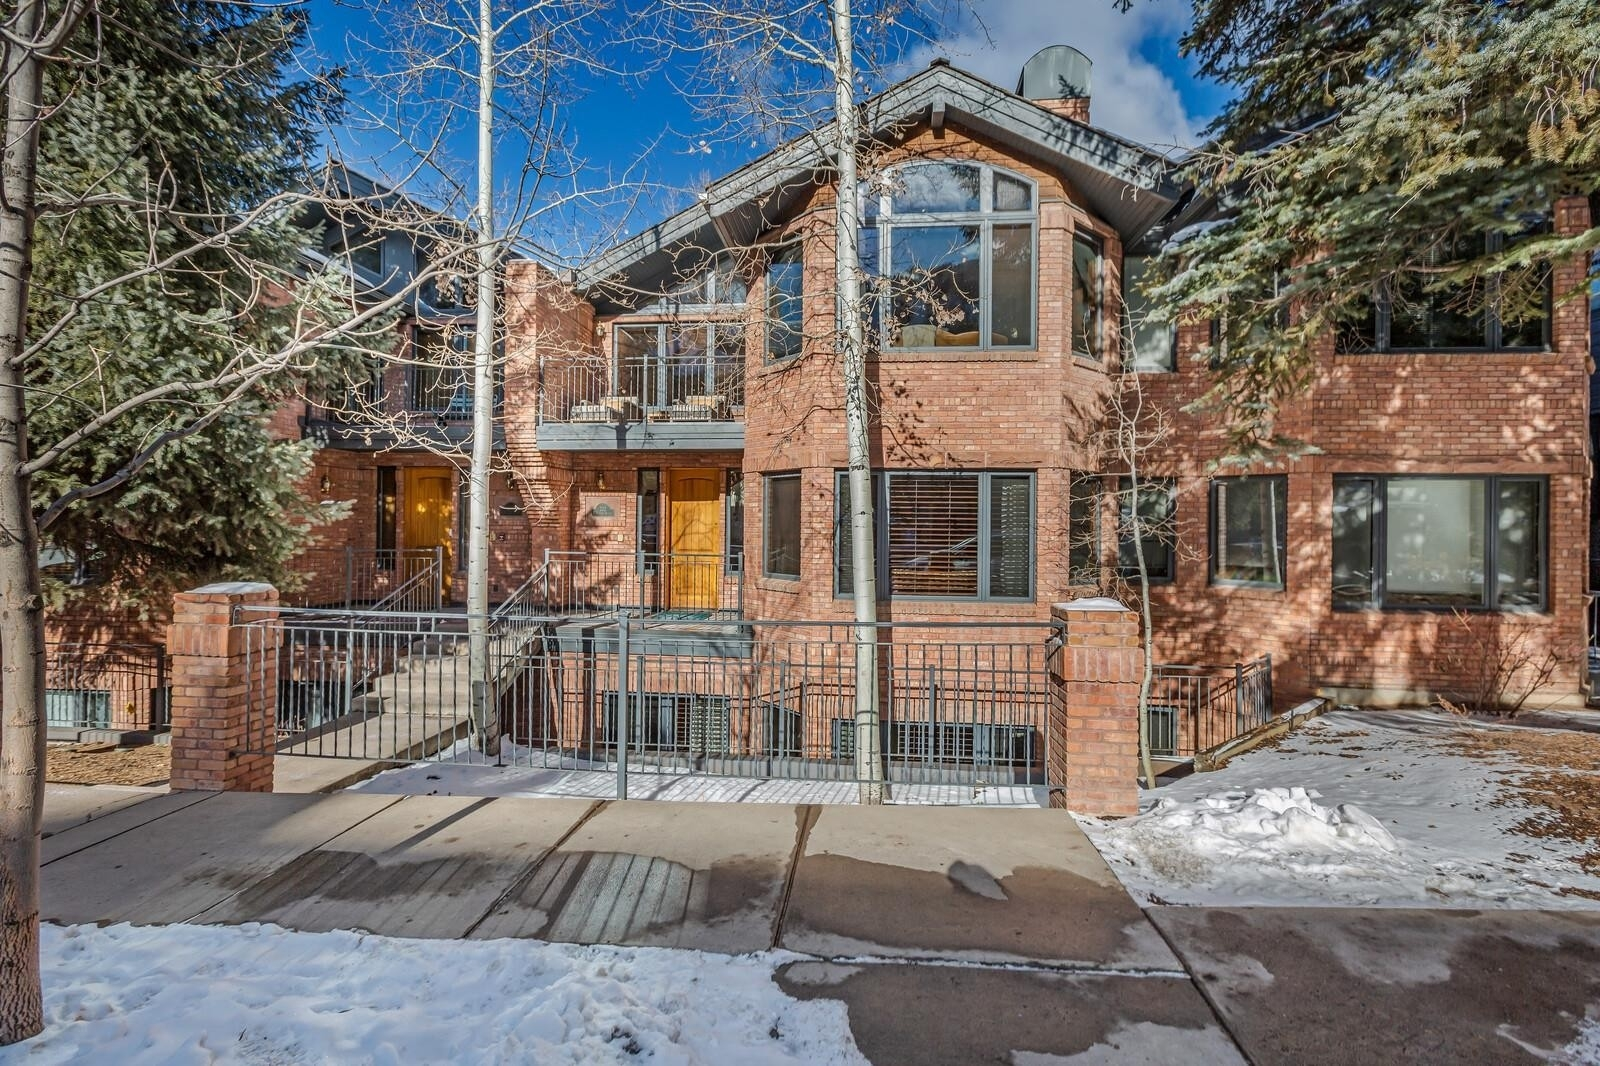 Condominium for Sale at 212 E Durant Avenue, D Downtown Aspen, Aspen, CO 81611